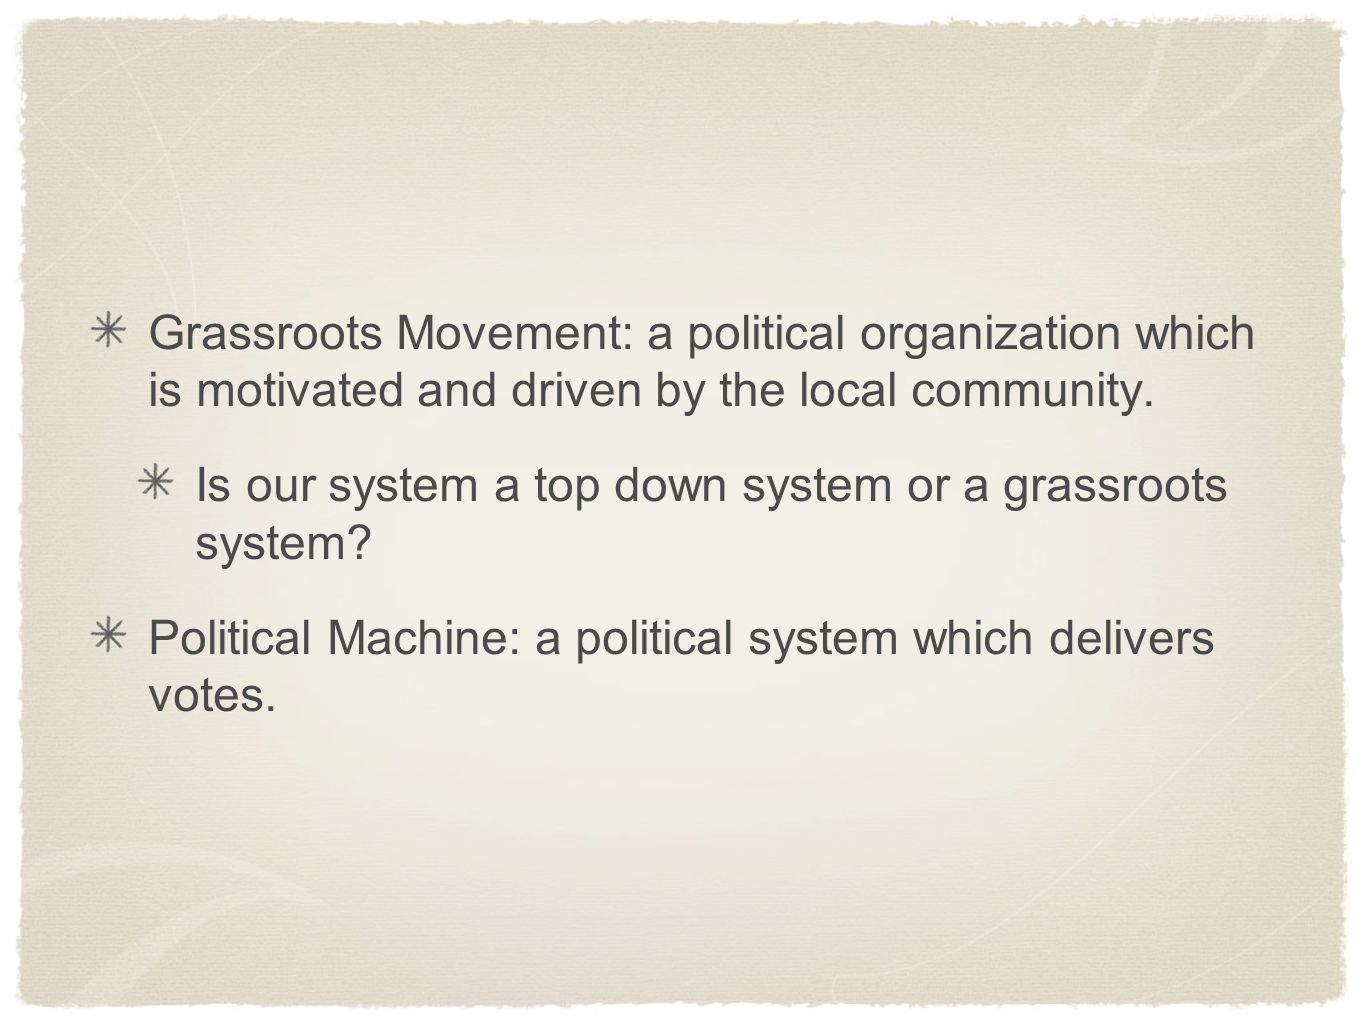 Grassroots Movement: a political organization which is motivated and driven by the local community.